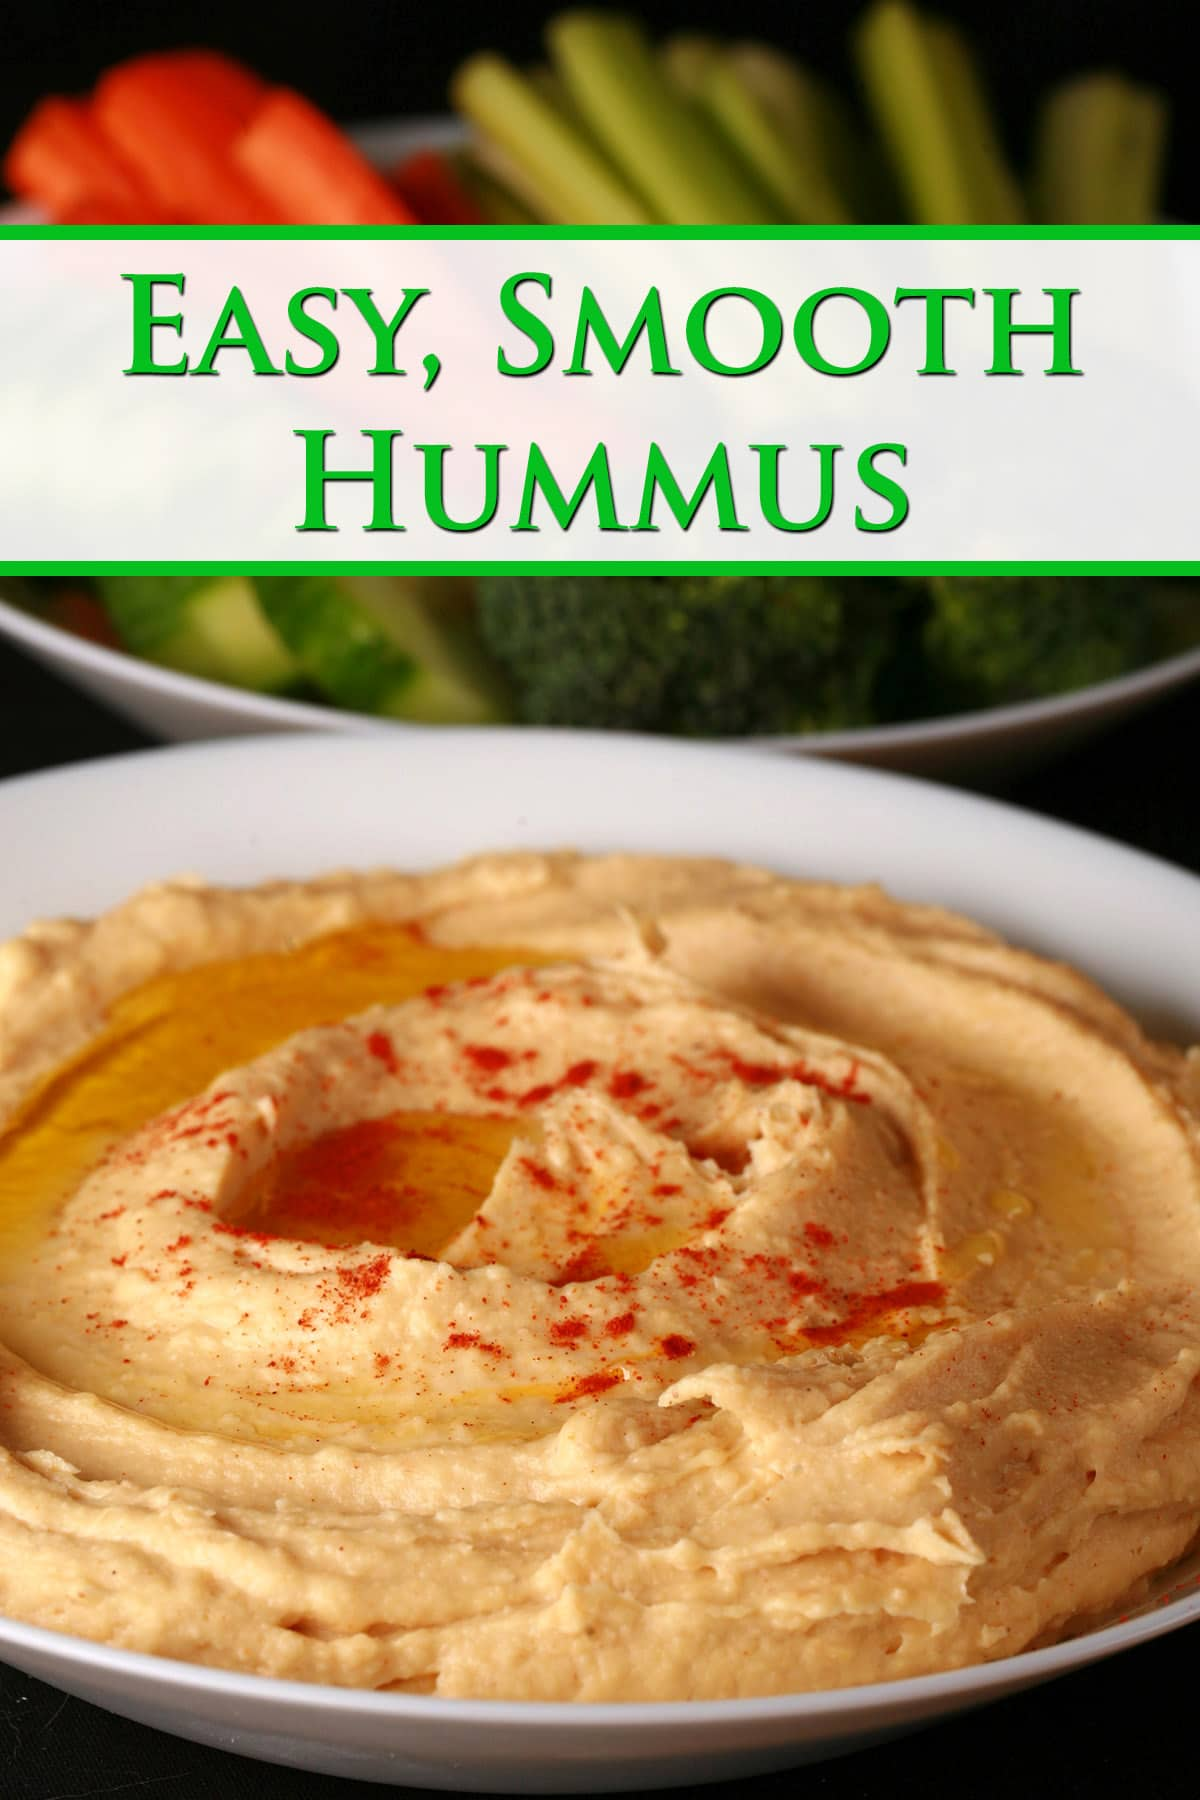 A white bowl of smooth hummus.  There is olive oil and a sprinkling of paprika on top, and a bowl of vegetable dippers next to it.  Green text overlay says Easy smooth hummus.